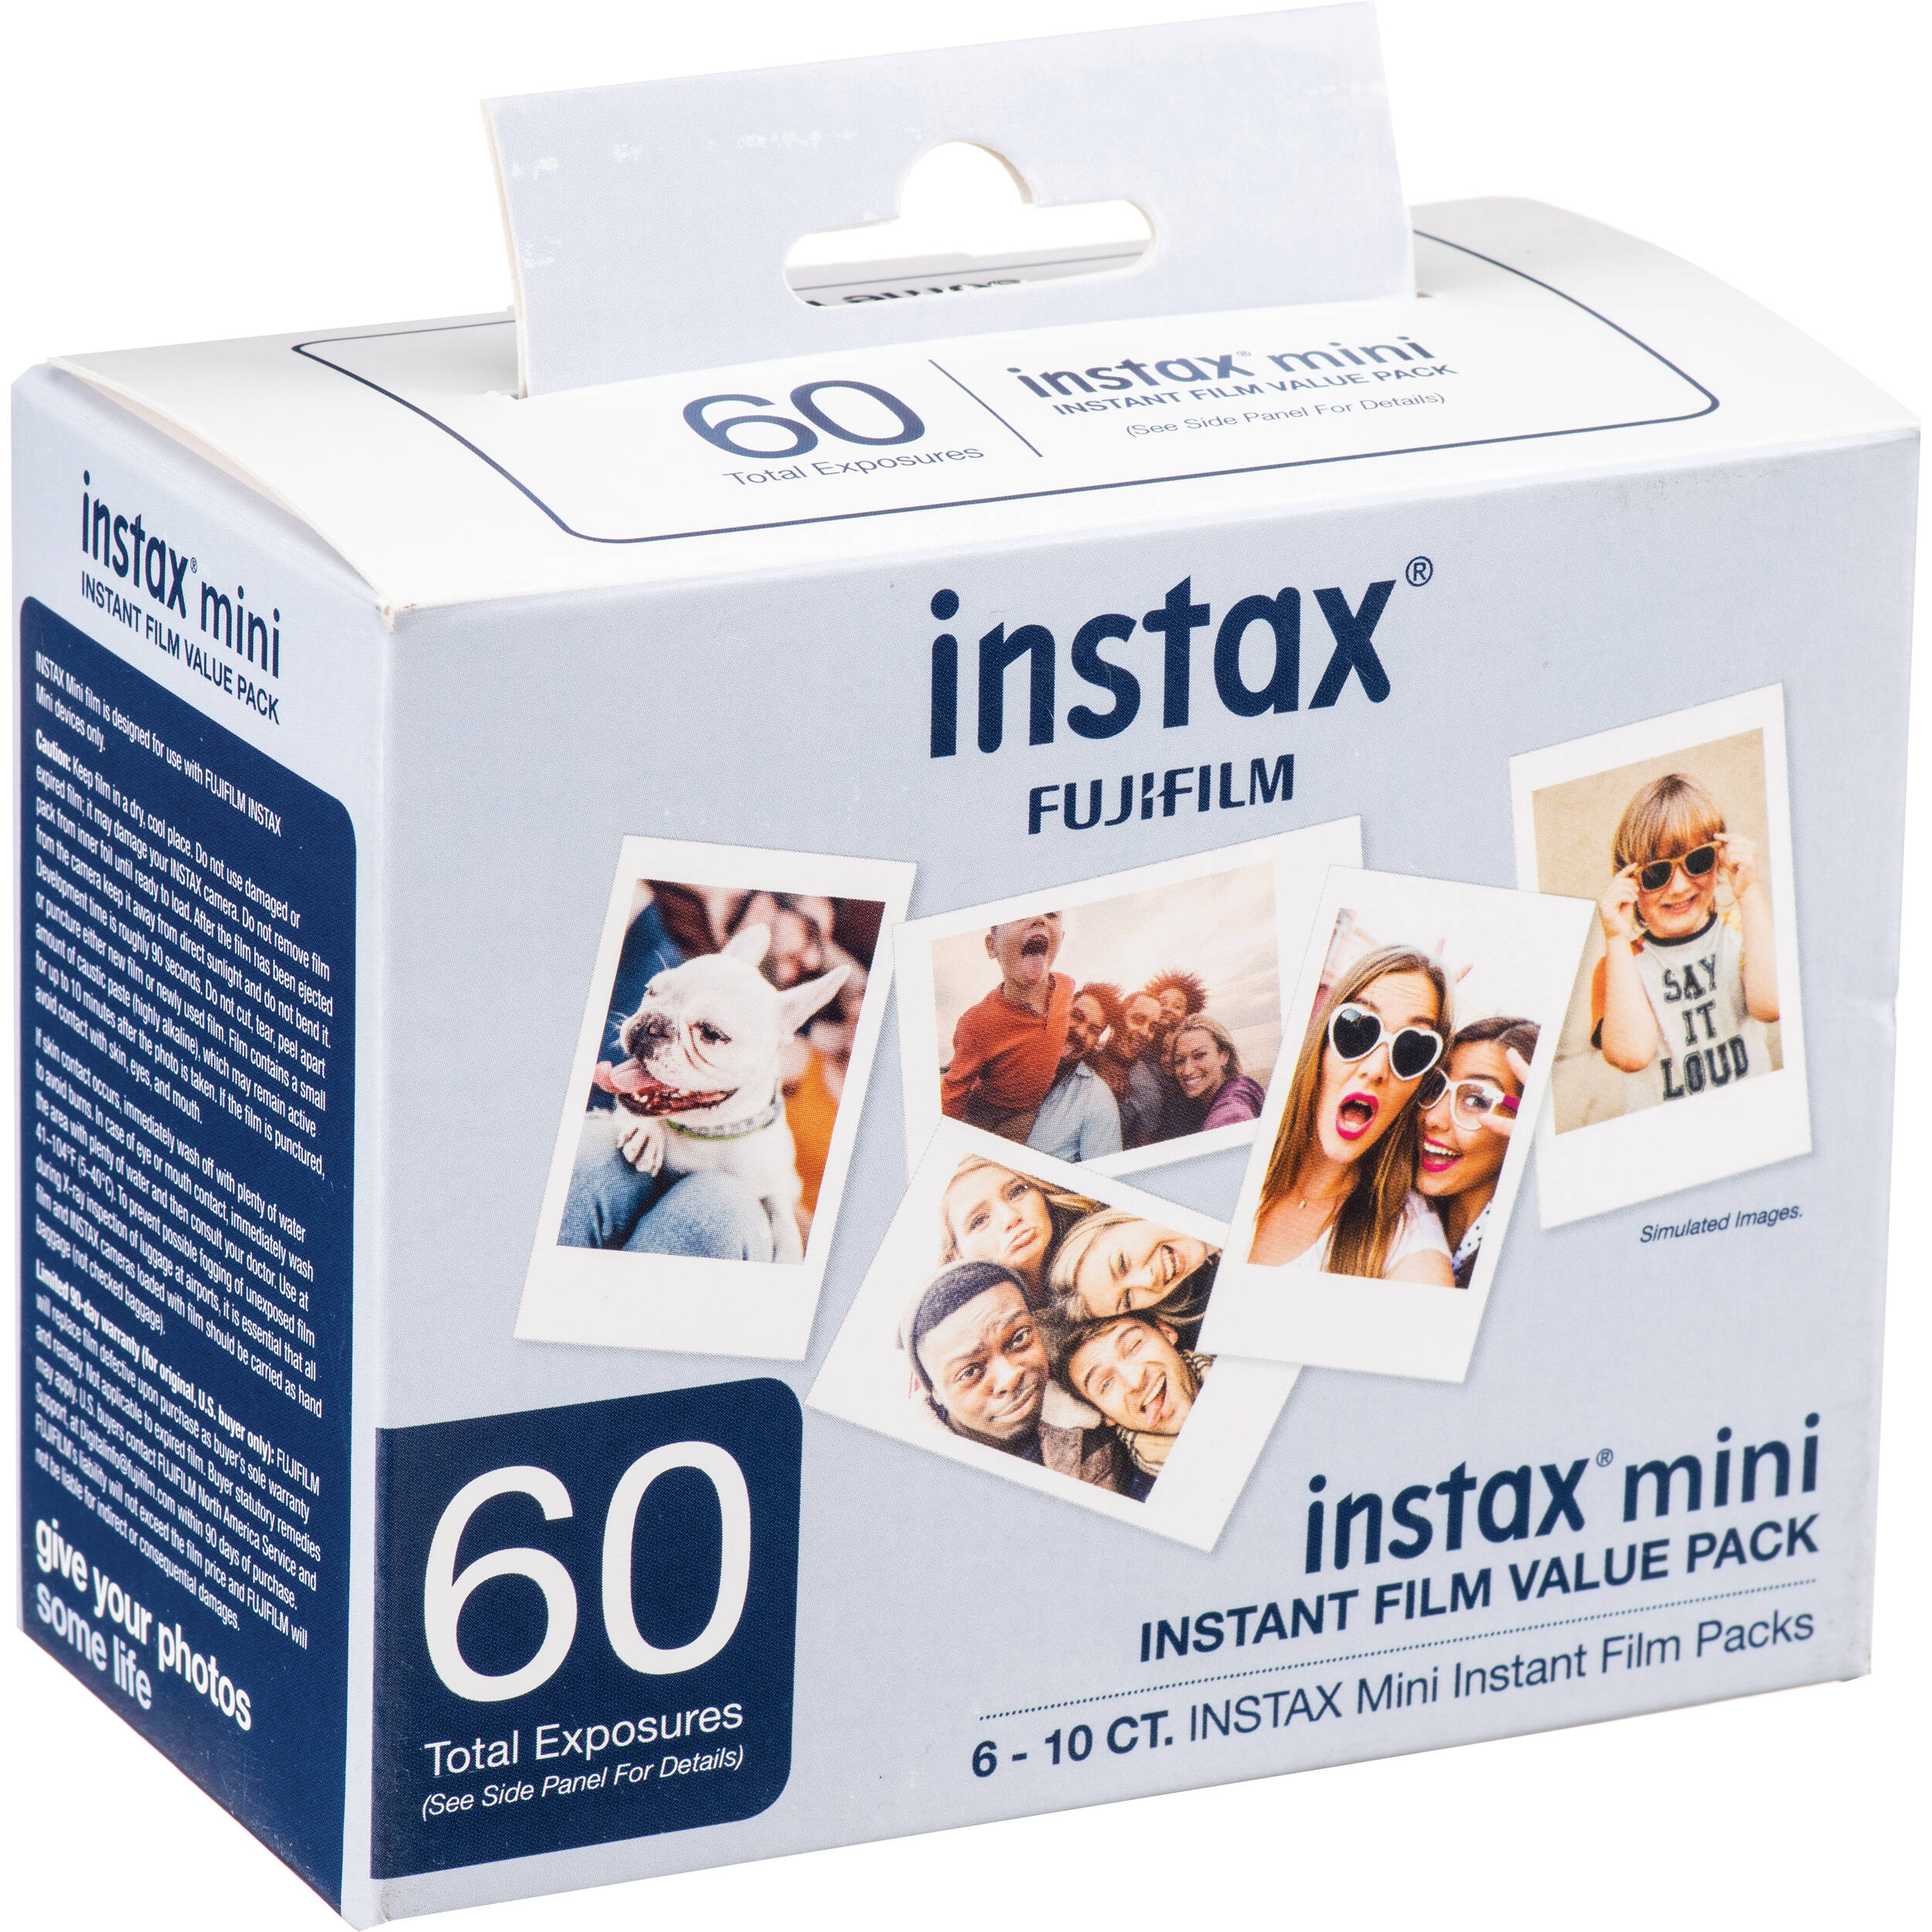 Fujifilm Instax Mini Instant Film 60 Exposures 600016111 B Amp H